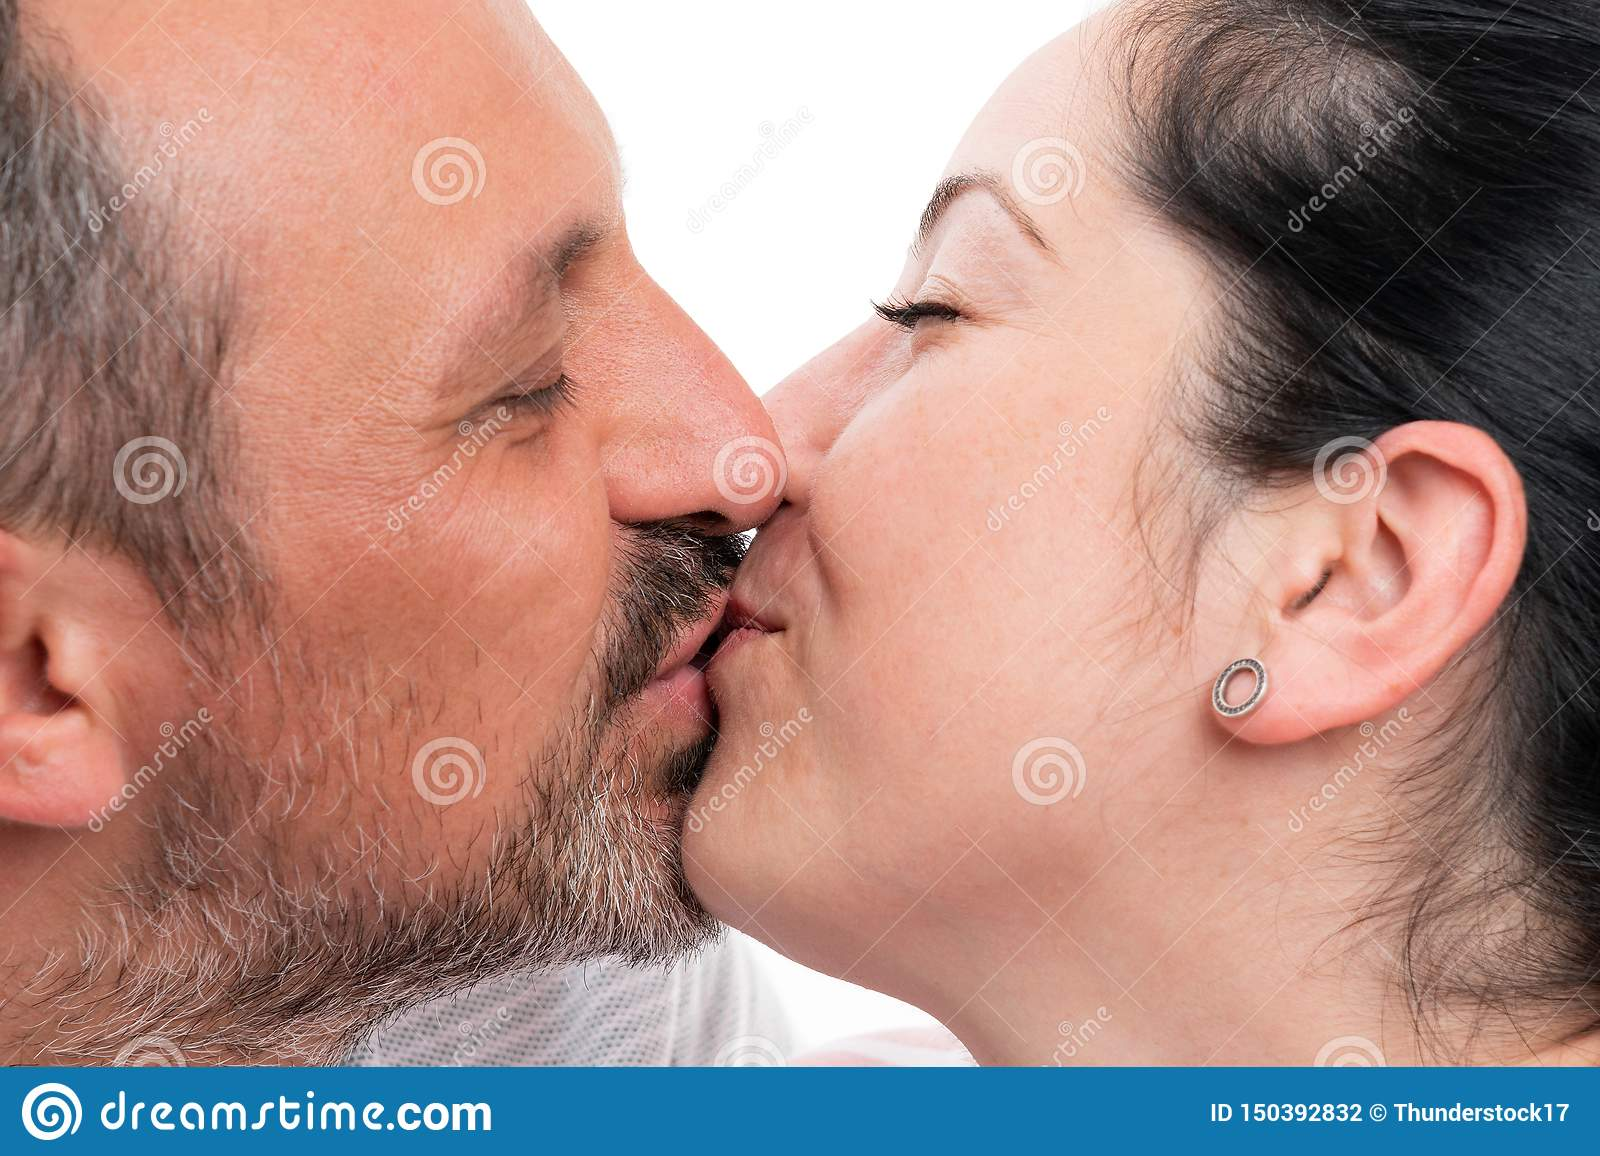 5 039 Kissing Lips Photos Free Royalty Free Stock Photos From Dreamstime